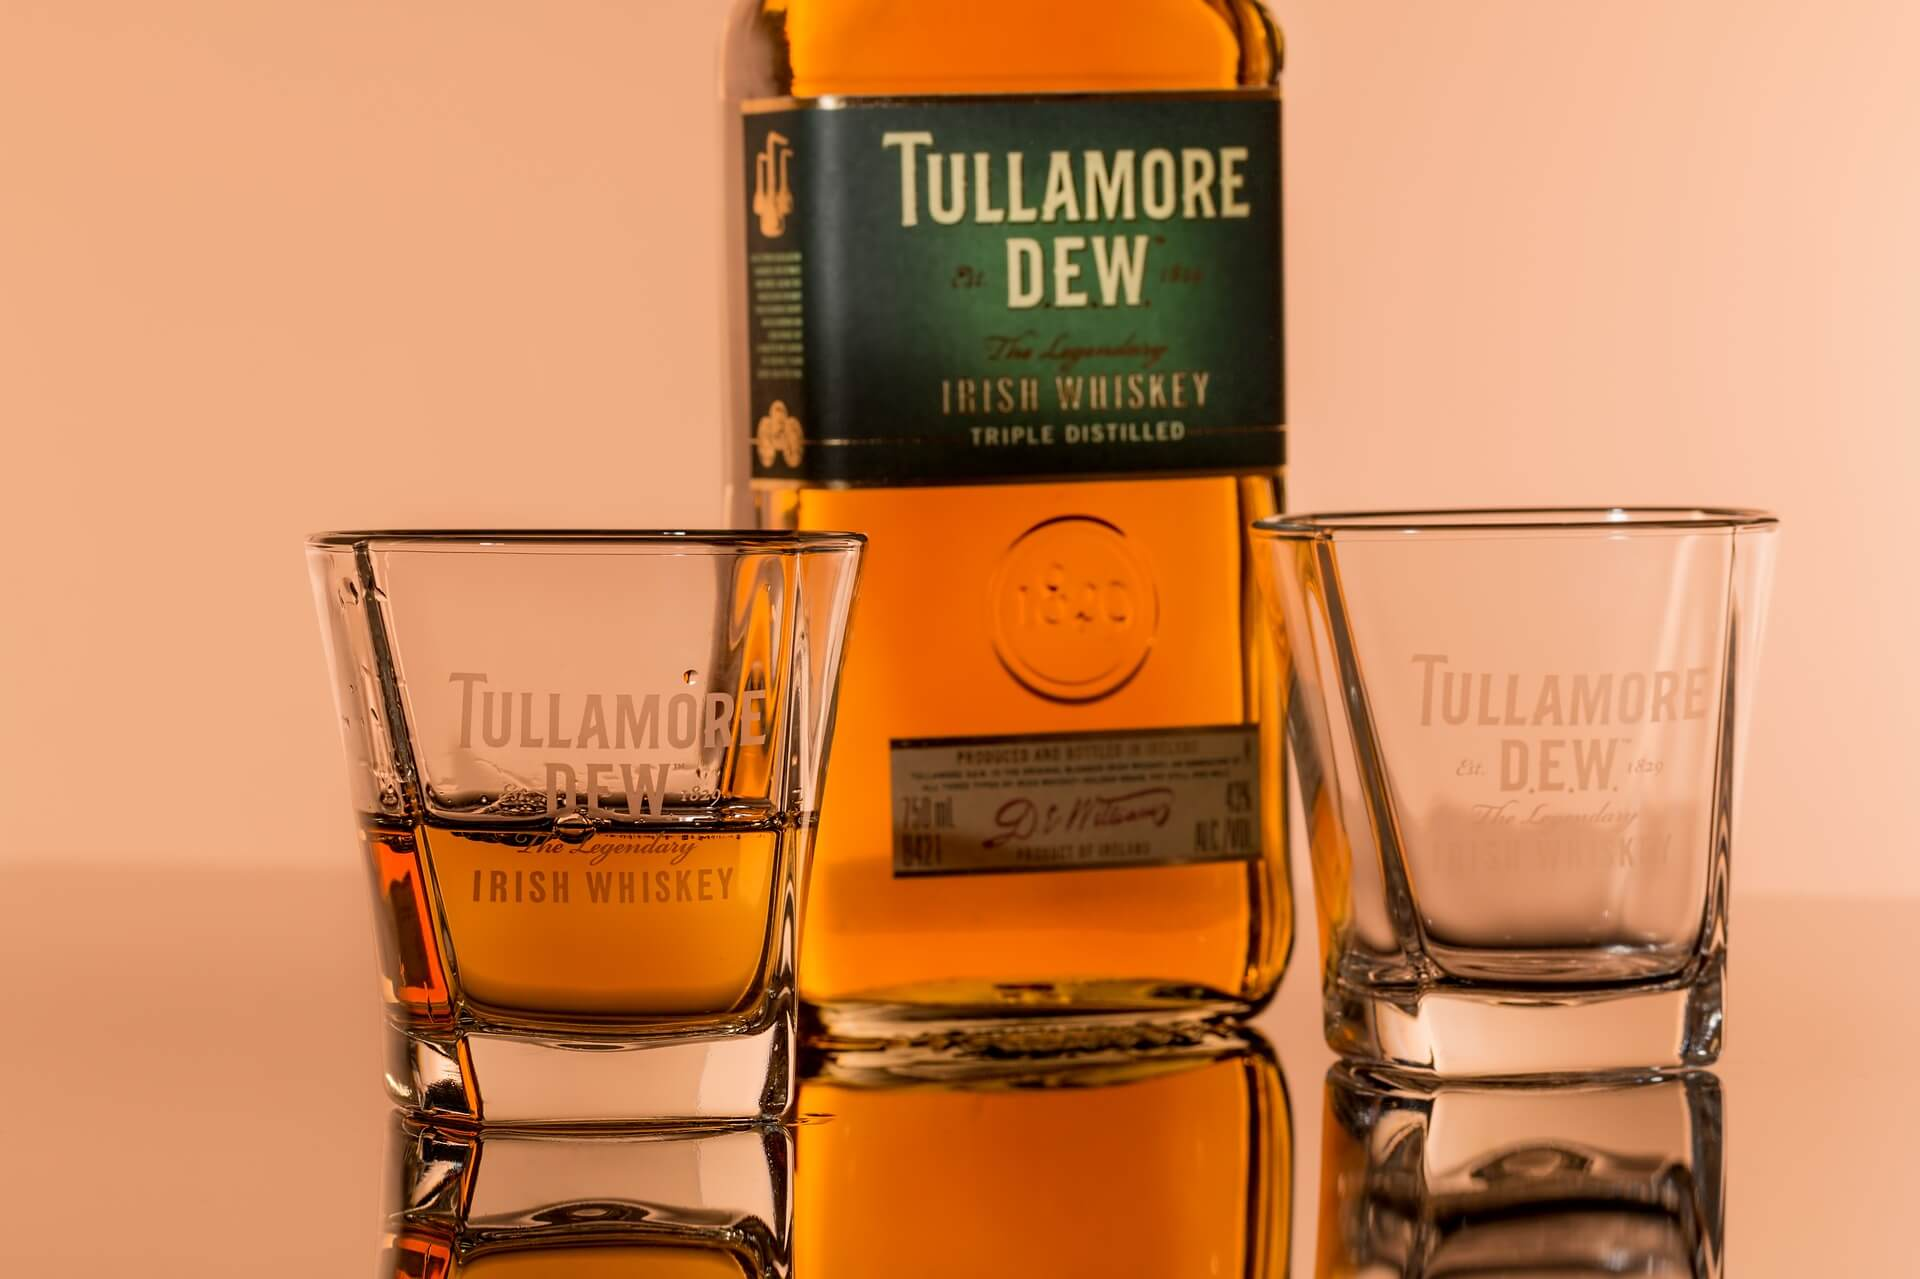 Whiskey Tullamore Dew Original Whiskey Irlandese Blended